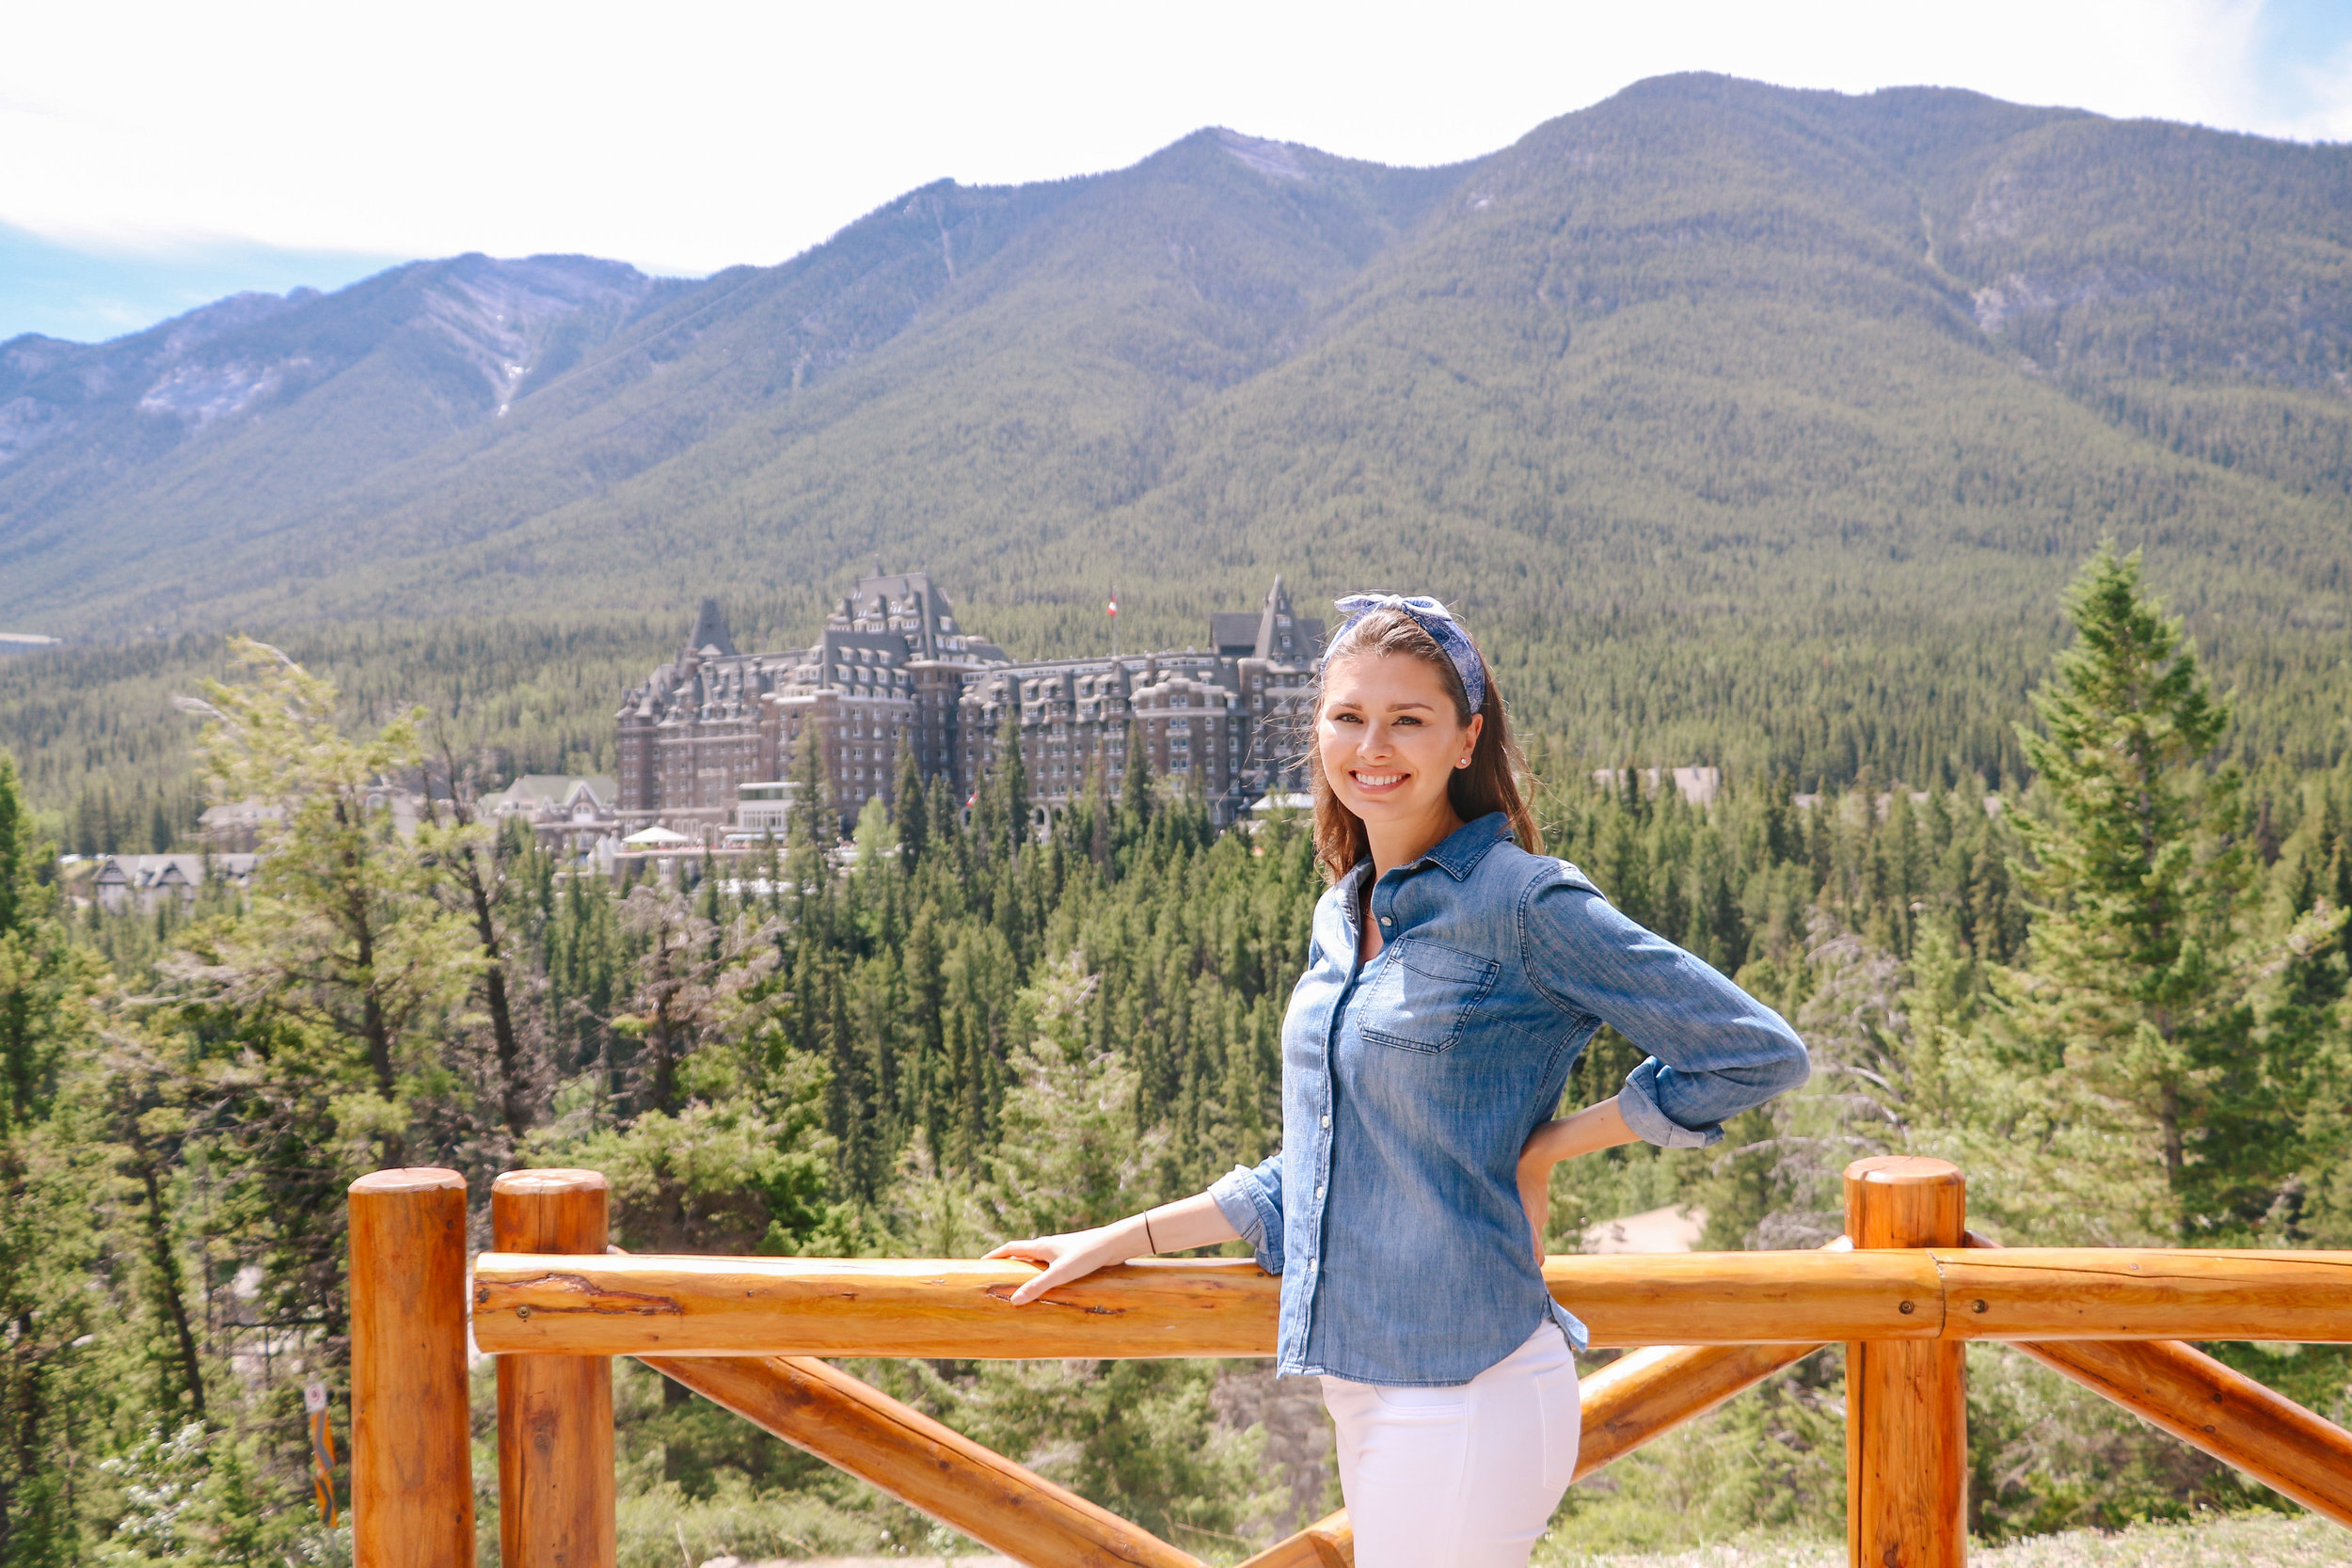 Hotel Spotlight Luxury In Banff At Fairmont Banff Springs And Fairmont Chateau Lake Louise By Courtney Brown